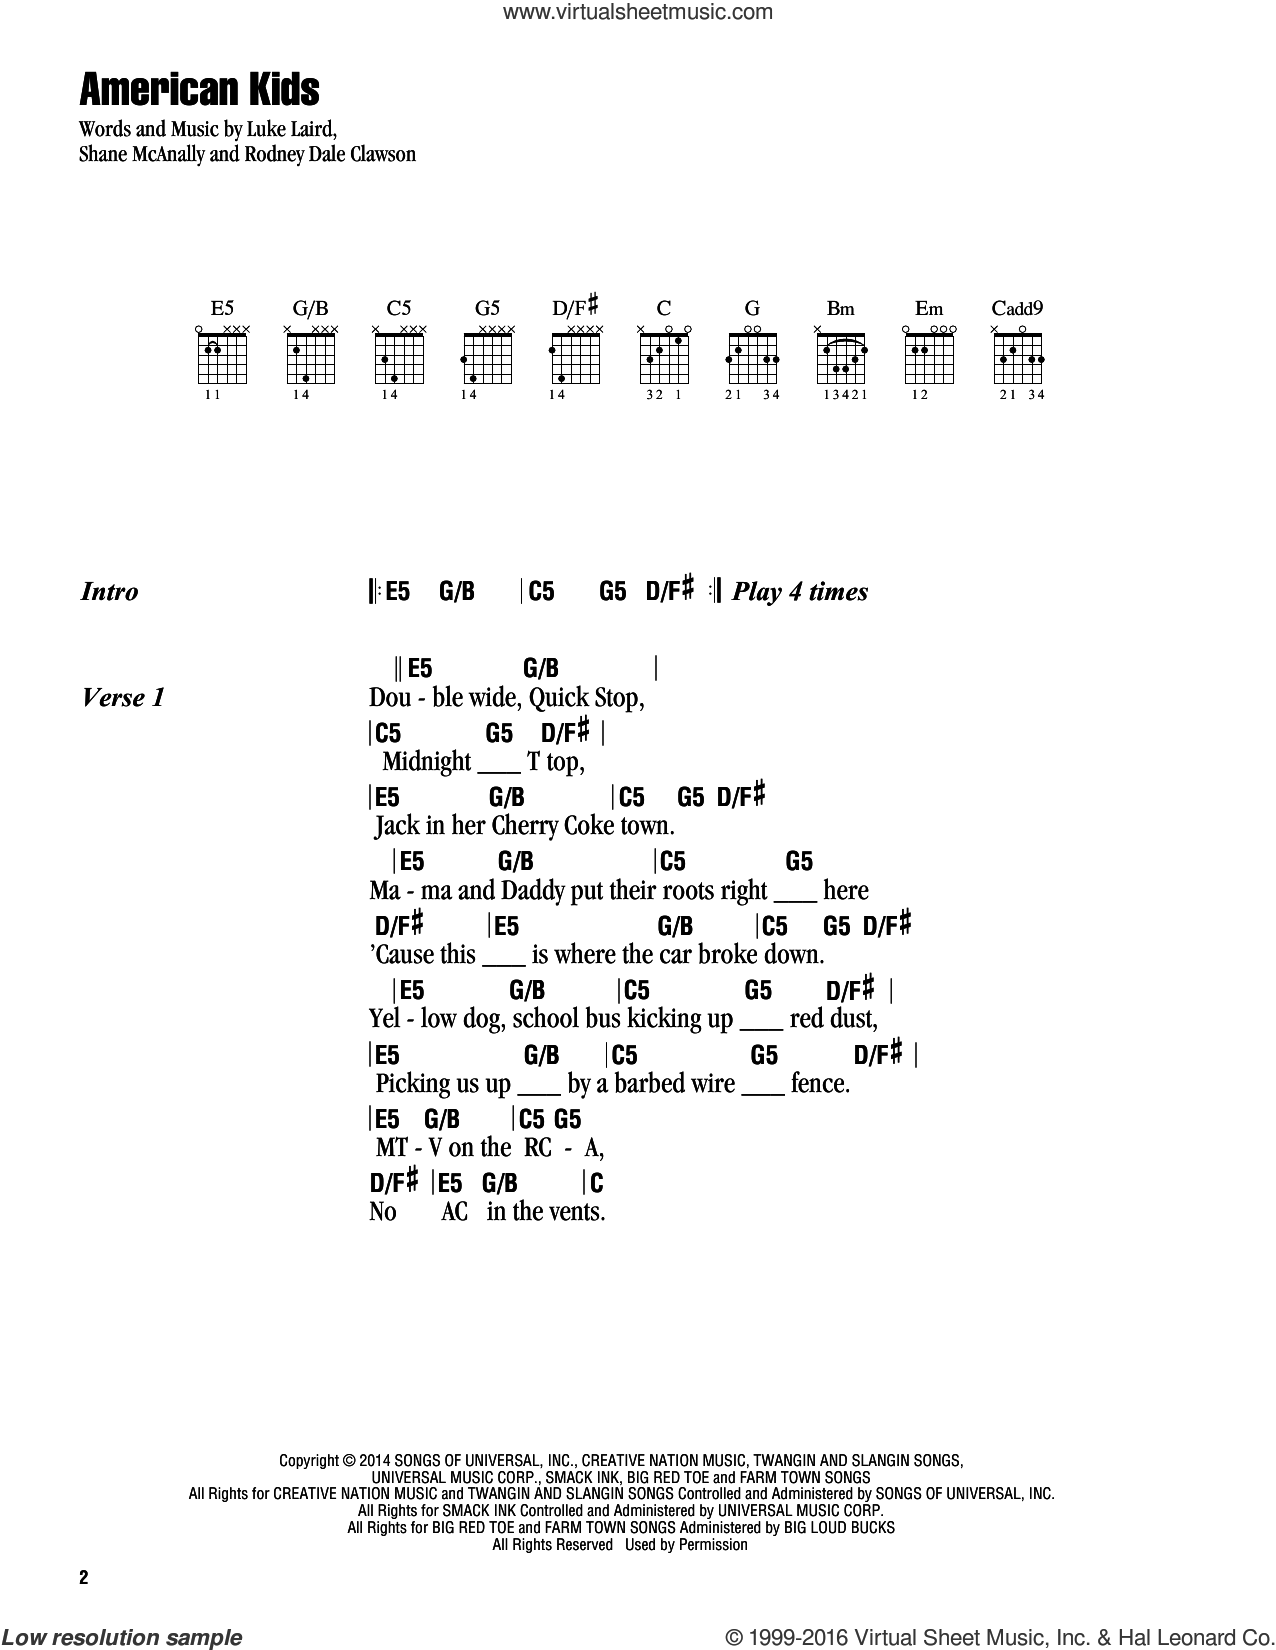 American Kids sheet music for guitar (chords) by Shane McAnally, Kenny Chesney, Luke Laird and Rodney Dale Clawson. Score Image Preview.